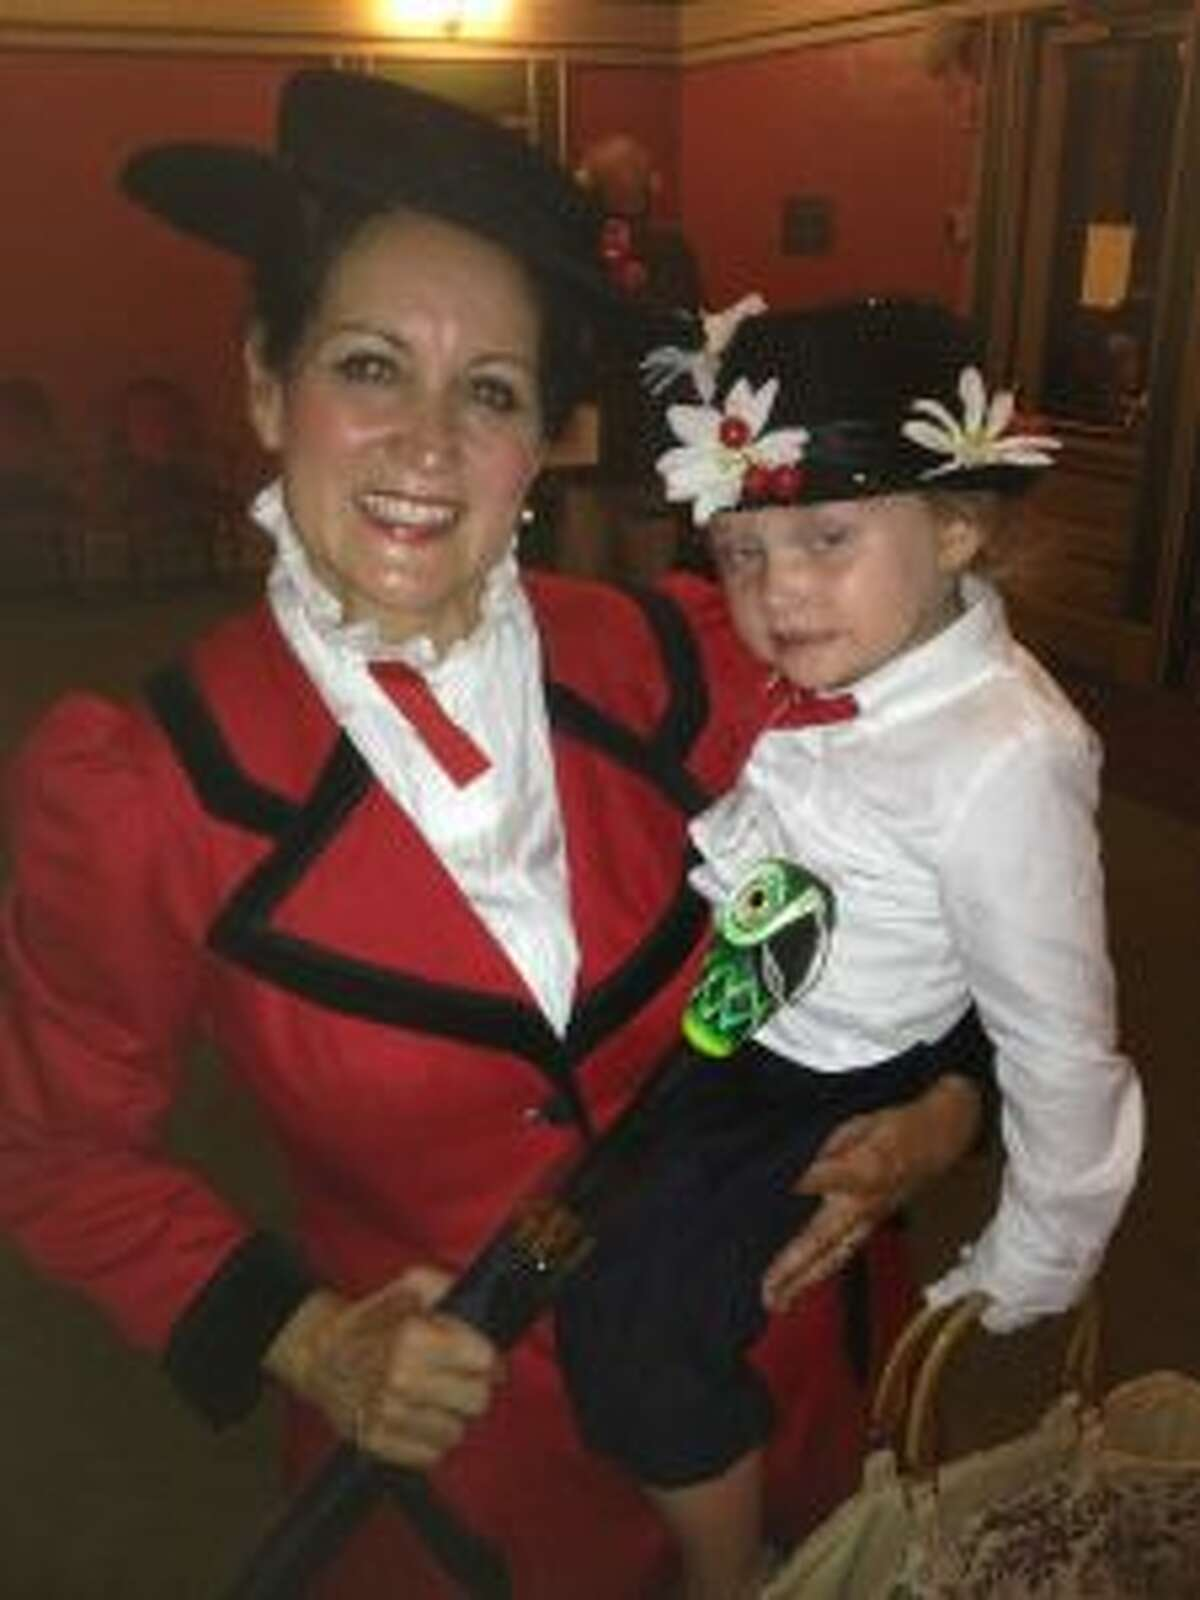 """Photo of Joanie Pointer, who plays Mary Poppins during the Manistee Civic Players' production of """"Mary Poppins"""", which has shows at 7:30 p.m. on Aug. 13 and 14."""